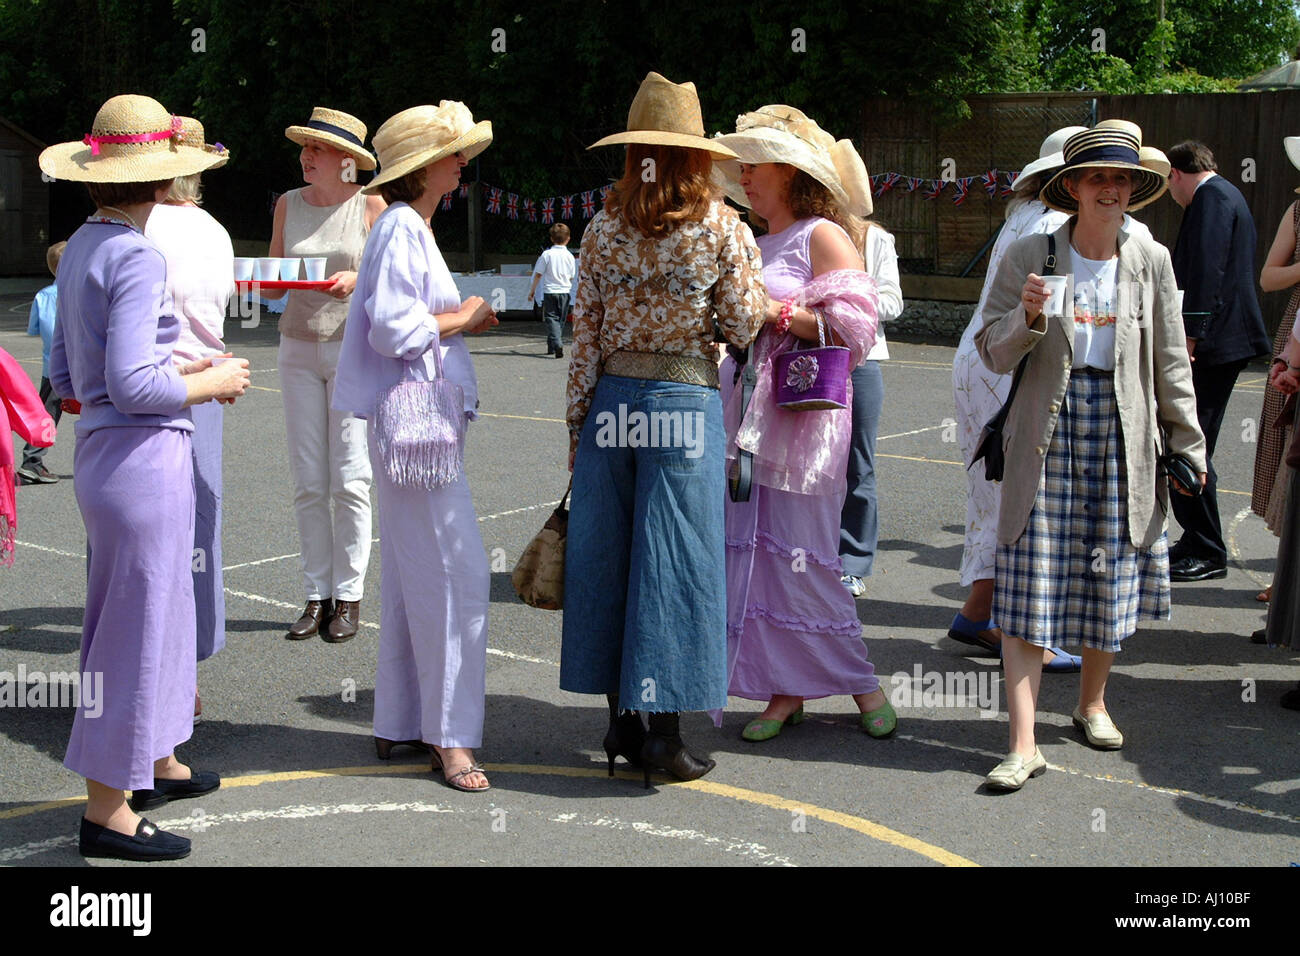 Queen Elizabeths Golden Jubilee Celebrations in a Hampshire School Playground Mums in Party Hats - Stock Image